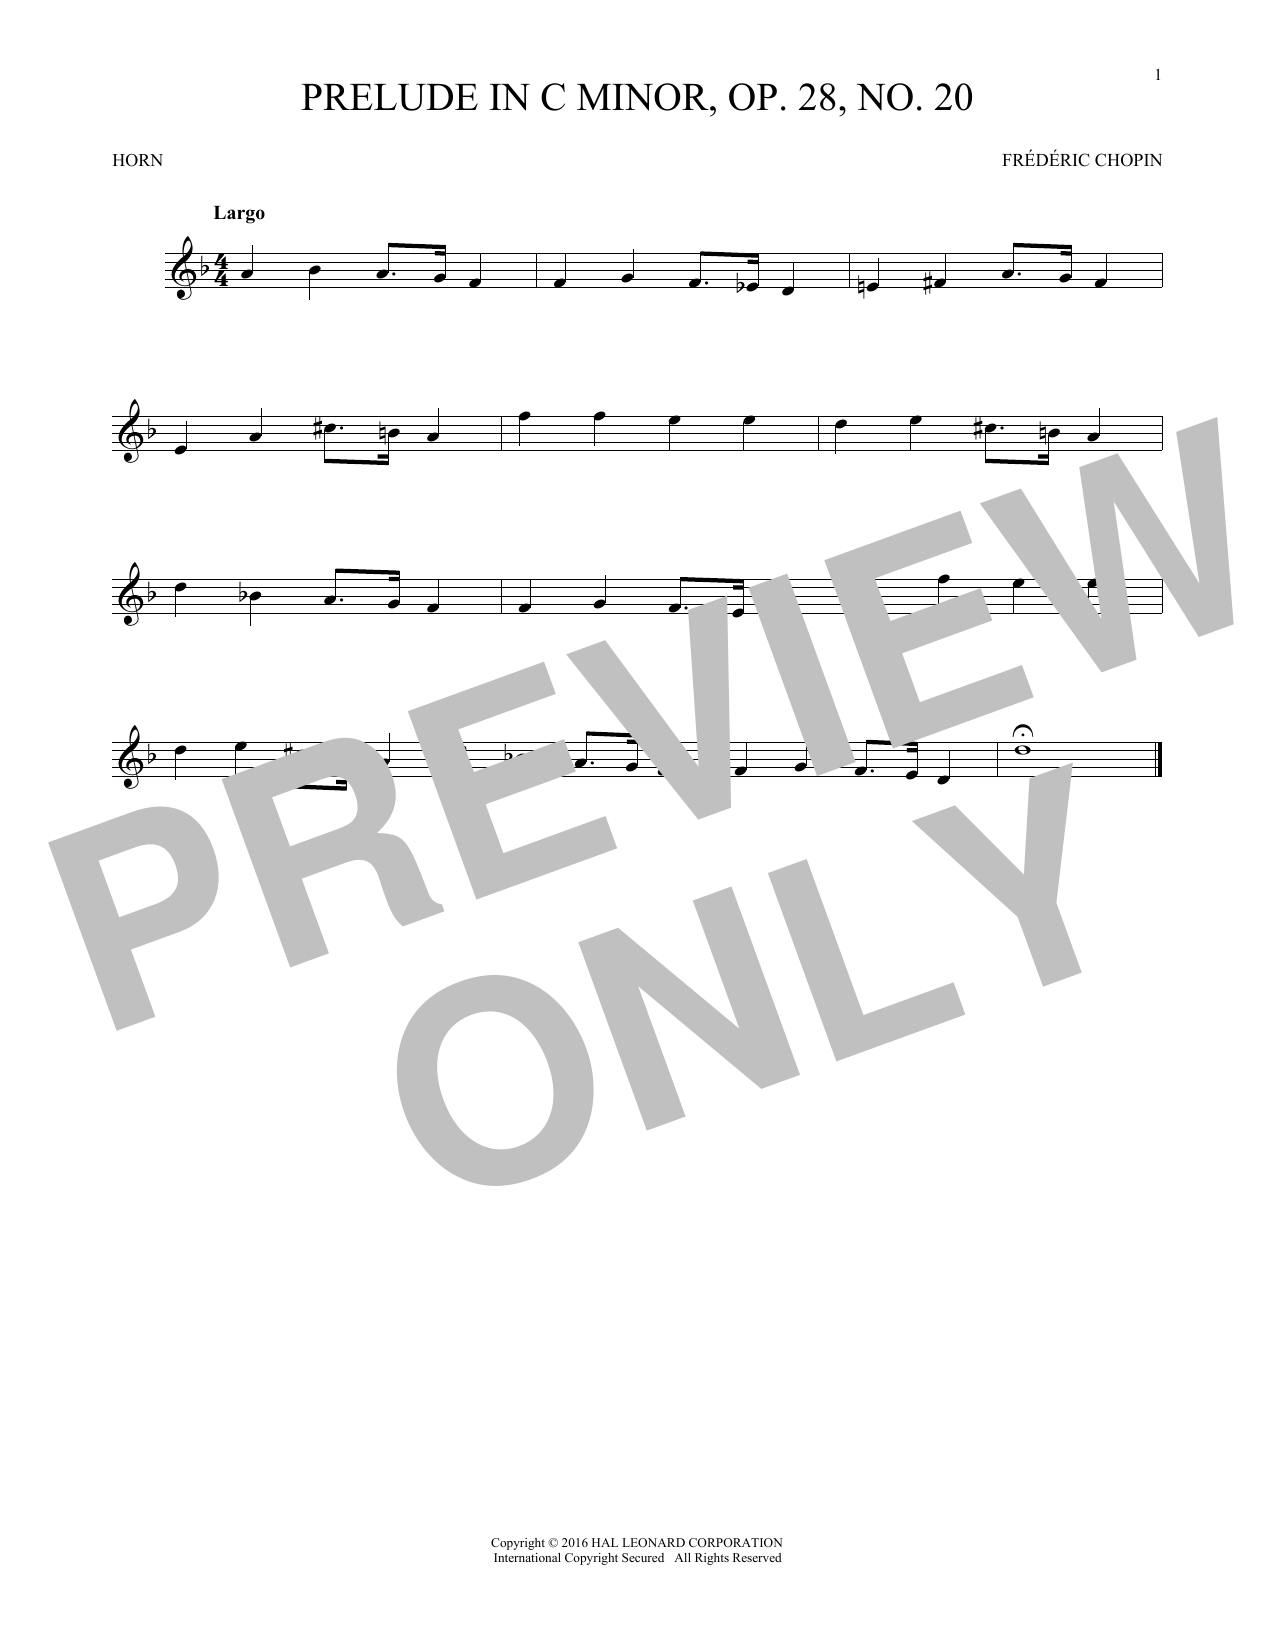 Prelude, Op. 28, No. 20 (French Horn Solo)